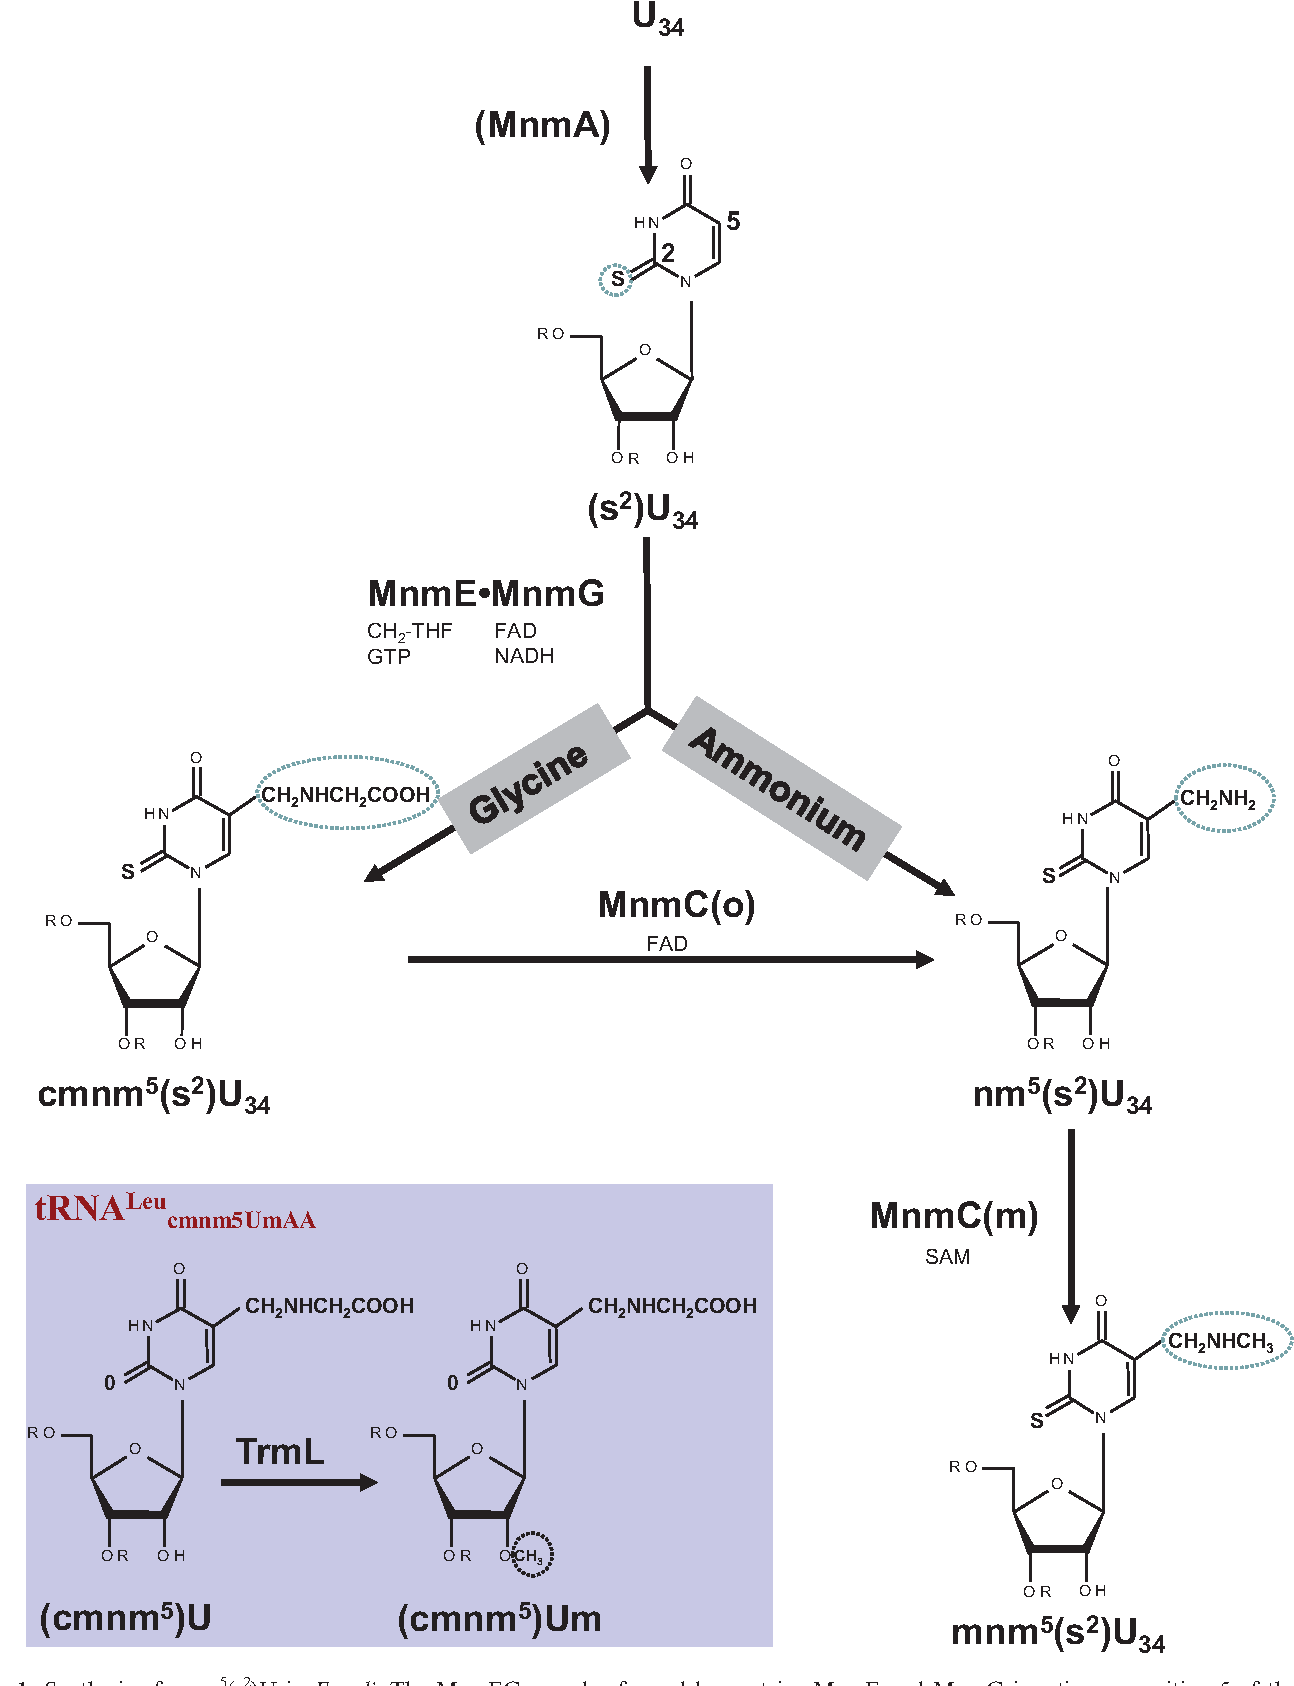 Figure 1. Synthesis of mnm5(s2)U in E. coli. The MnmEG complex formed by proteins MnmE and MnmG is active on position 5 of the wobble uridine (U34) in tRNALysmnm5s2UUU, tRNA Glu mnm5s2UUC, tRNA Gln cmnm5s2UUG, tRNA Leu cmnm5UmAA, tRNA Arg mnm5UCU and tRNA Gly mnm5UCC. MnmE is a three-domain protein that binds GTP and methylenetetrahydrofolate (CH2-THF), whereas MnmG is a FAD- and NADH-binding protein. The MnmC(o) activity of the bi-functional enzyme MnmC transforms cmnm5(s2)U to nm5(s2)U and the MnmC(m) activity of MnmC transforms nm5(s2)U to the final product mnm5(s2)U. Thiolation at position 2 of the wobble uridine (U34) in tRNALysmnm5s2UUU, tRNA Glu mnm5s2UUC and tRNA Gln cmnm5s2UUG is mediated by the protein MnmA. Modifications occur at the 5- and 2-positions independent of each other. TrmL methylates the 20-OH group of the U-ribose in tRNALeucmnm5UmAA (inset panel).